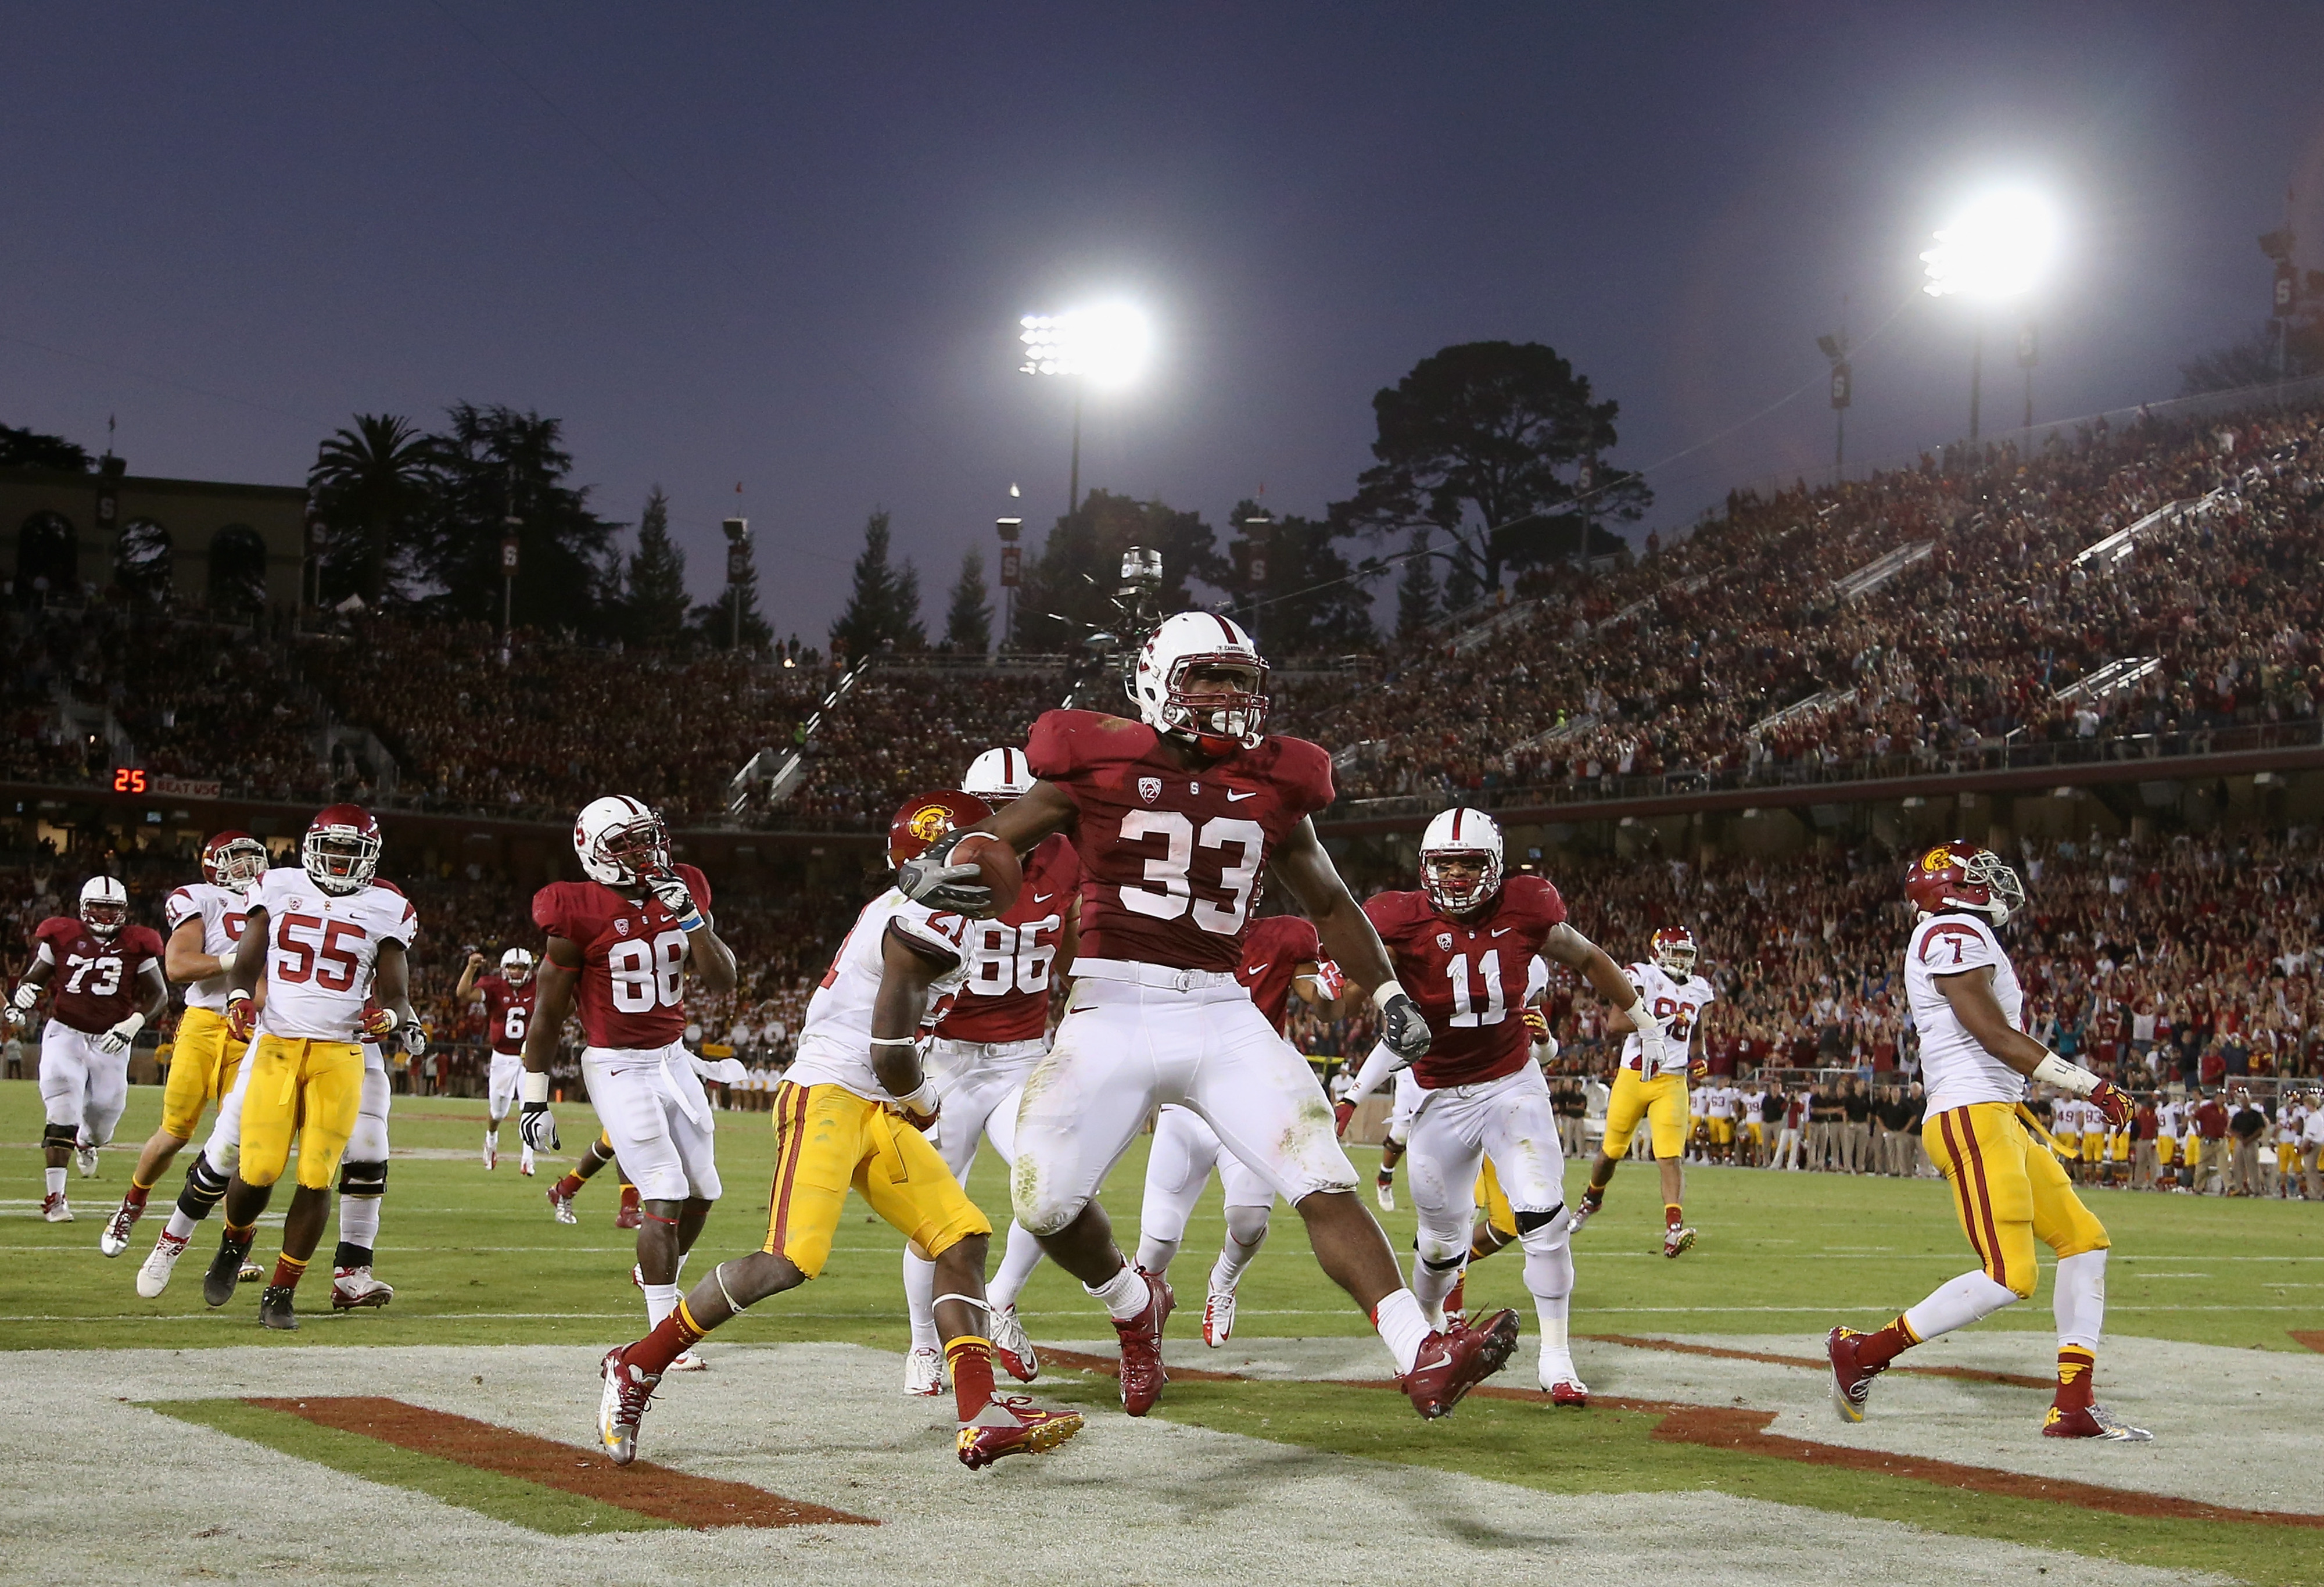 PALO ALTO, CA - SEPTEMBER 15: Stepfan Taylor #33 of the Stanford Cardinal runs in for a touchdown against the USC Trojans at Stanford Stadium on September 15, 2012 in Palo Alto, California.  (Photo by Ezra Shaw/Getty Images)